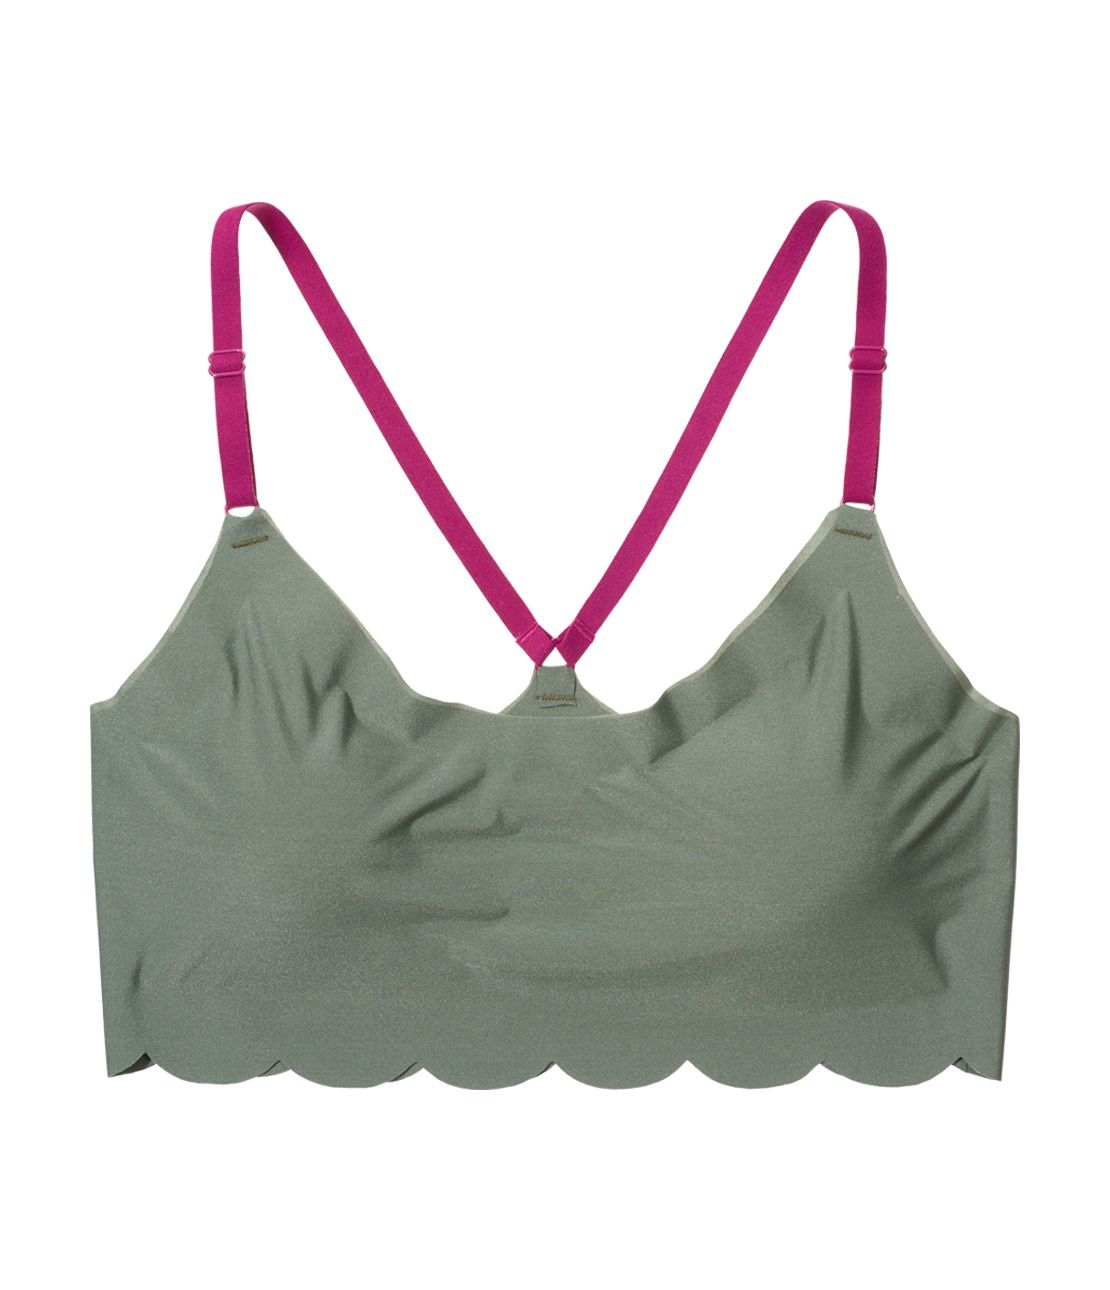 YM simple scalloped bra top